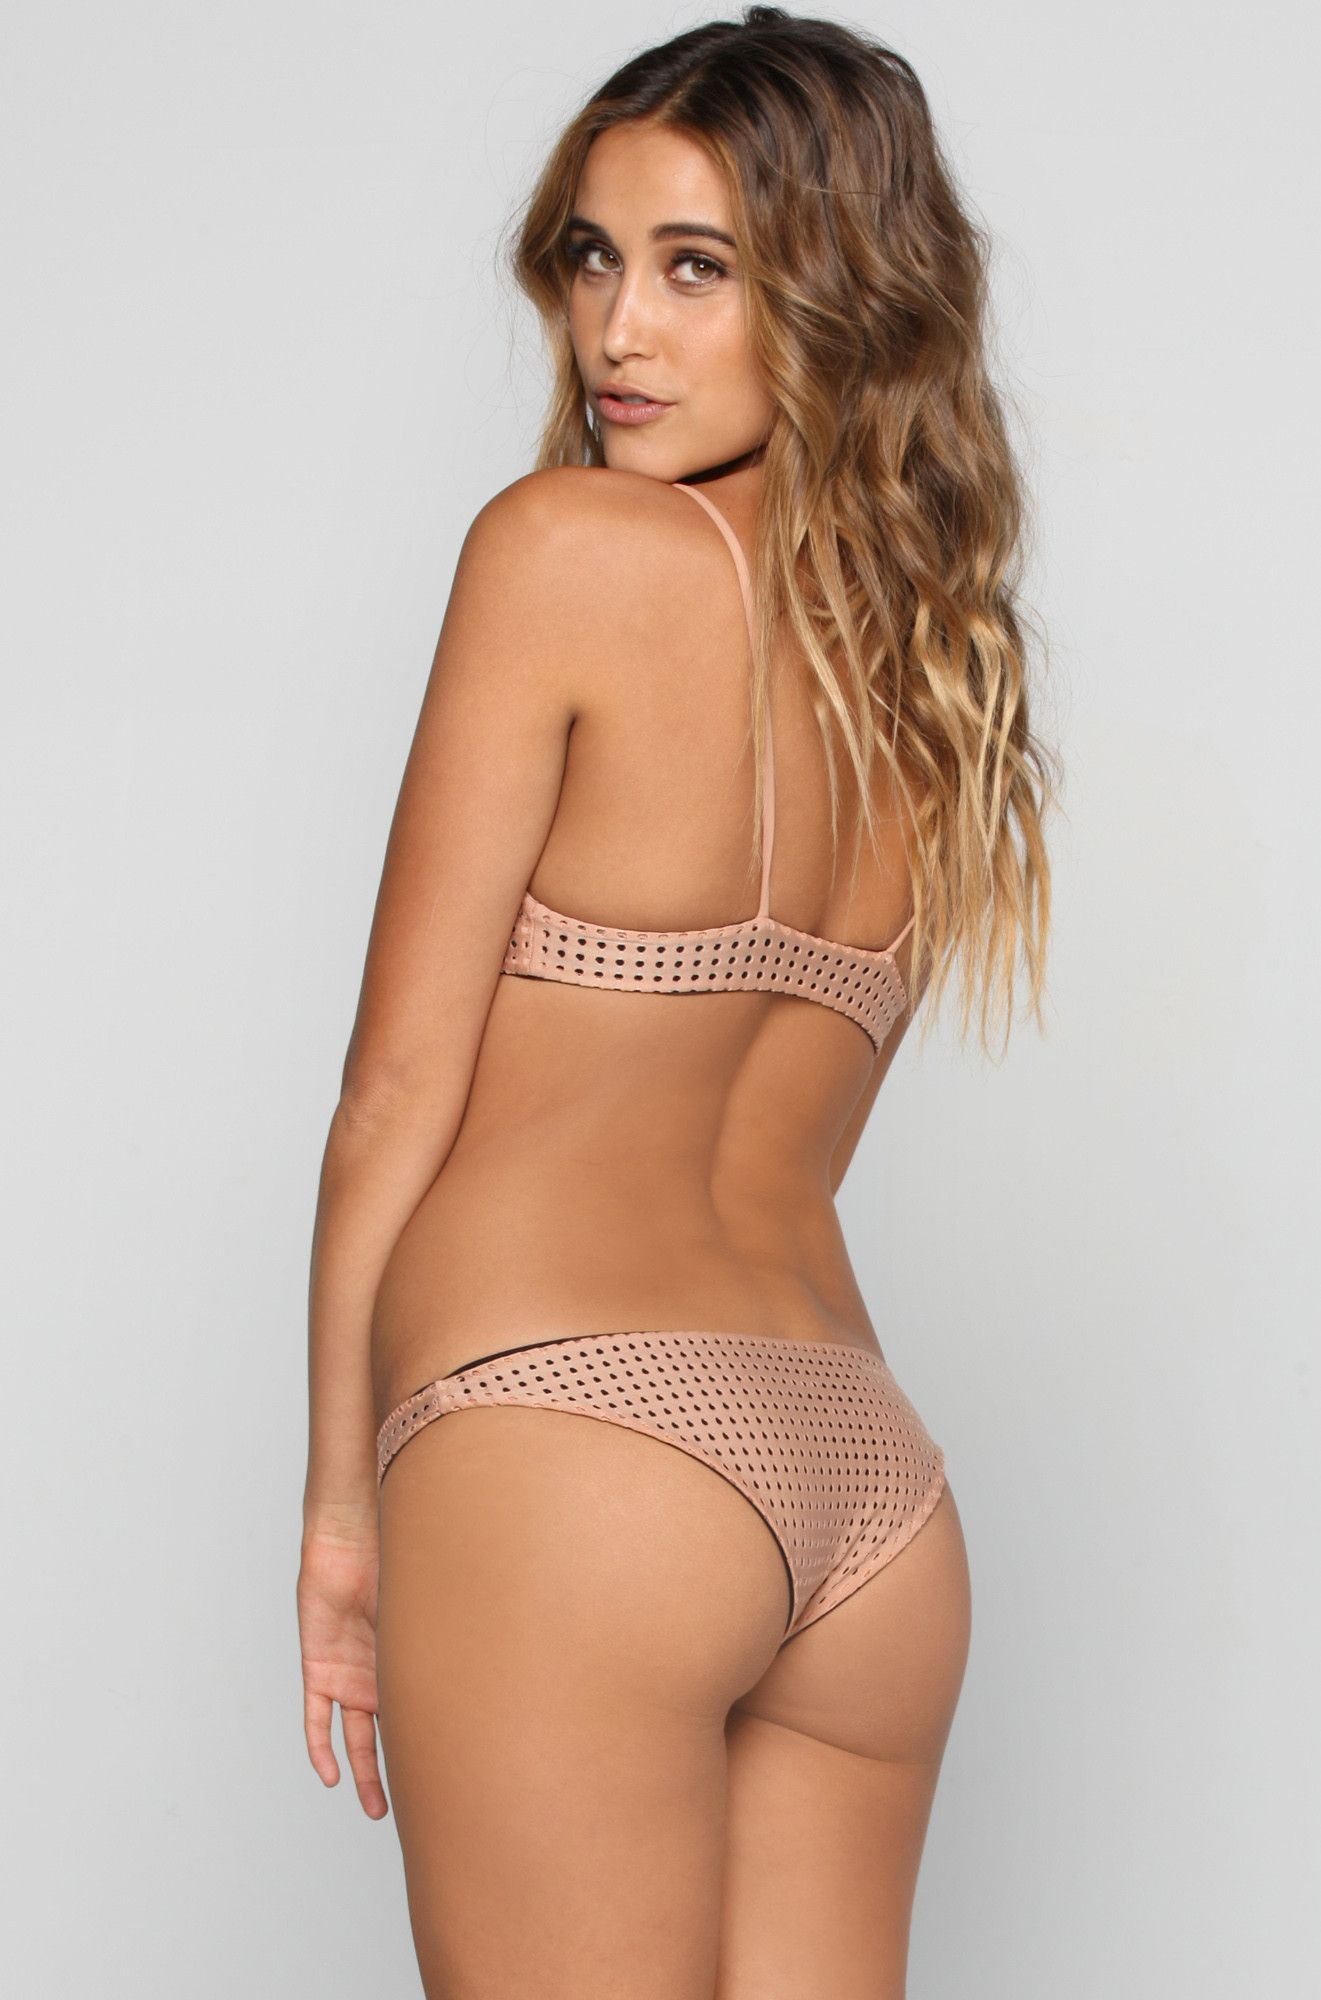 Celebrites Anna Herrin nude (36 photos), Sexy, Bikini, Instagram, see through 2015